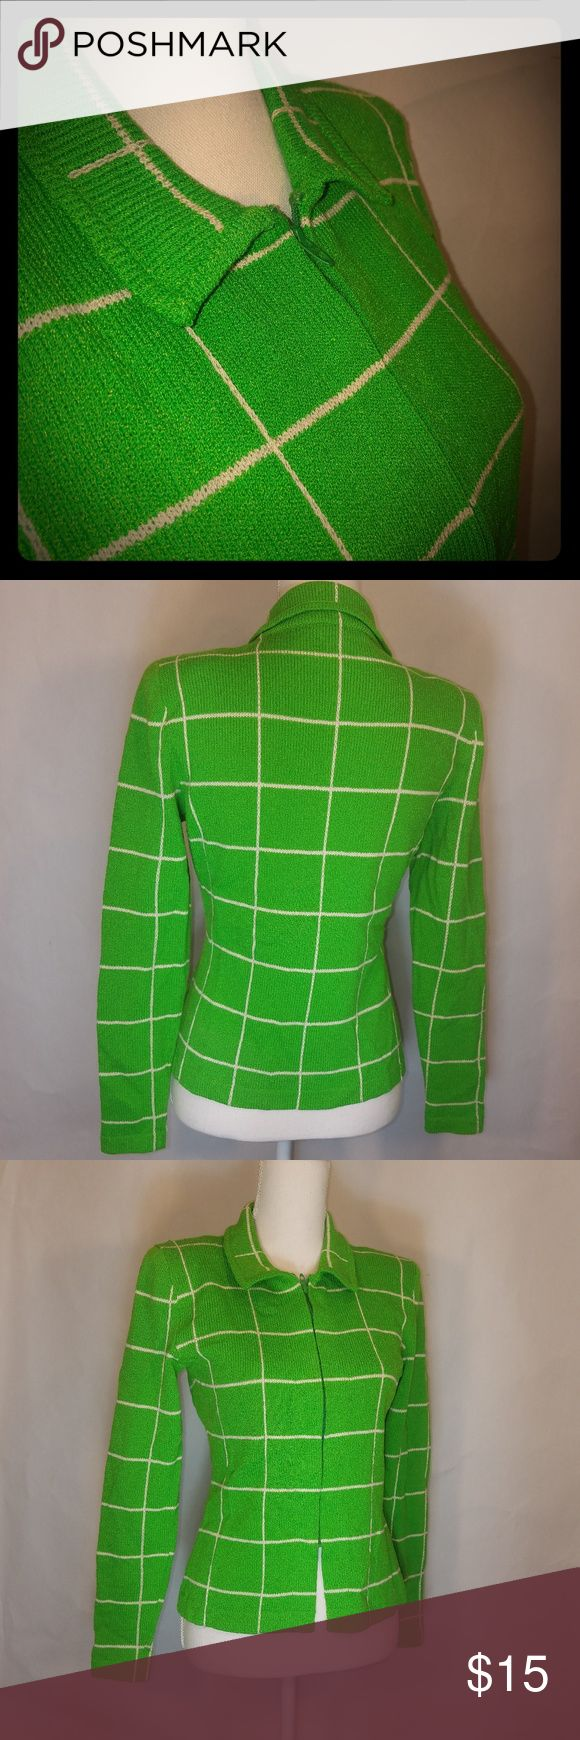 Vintage Corinne O'hare zip up sweater Vintage …